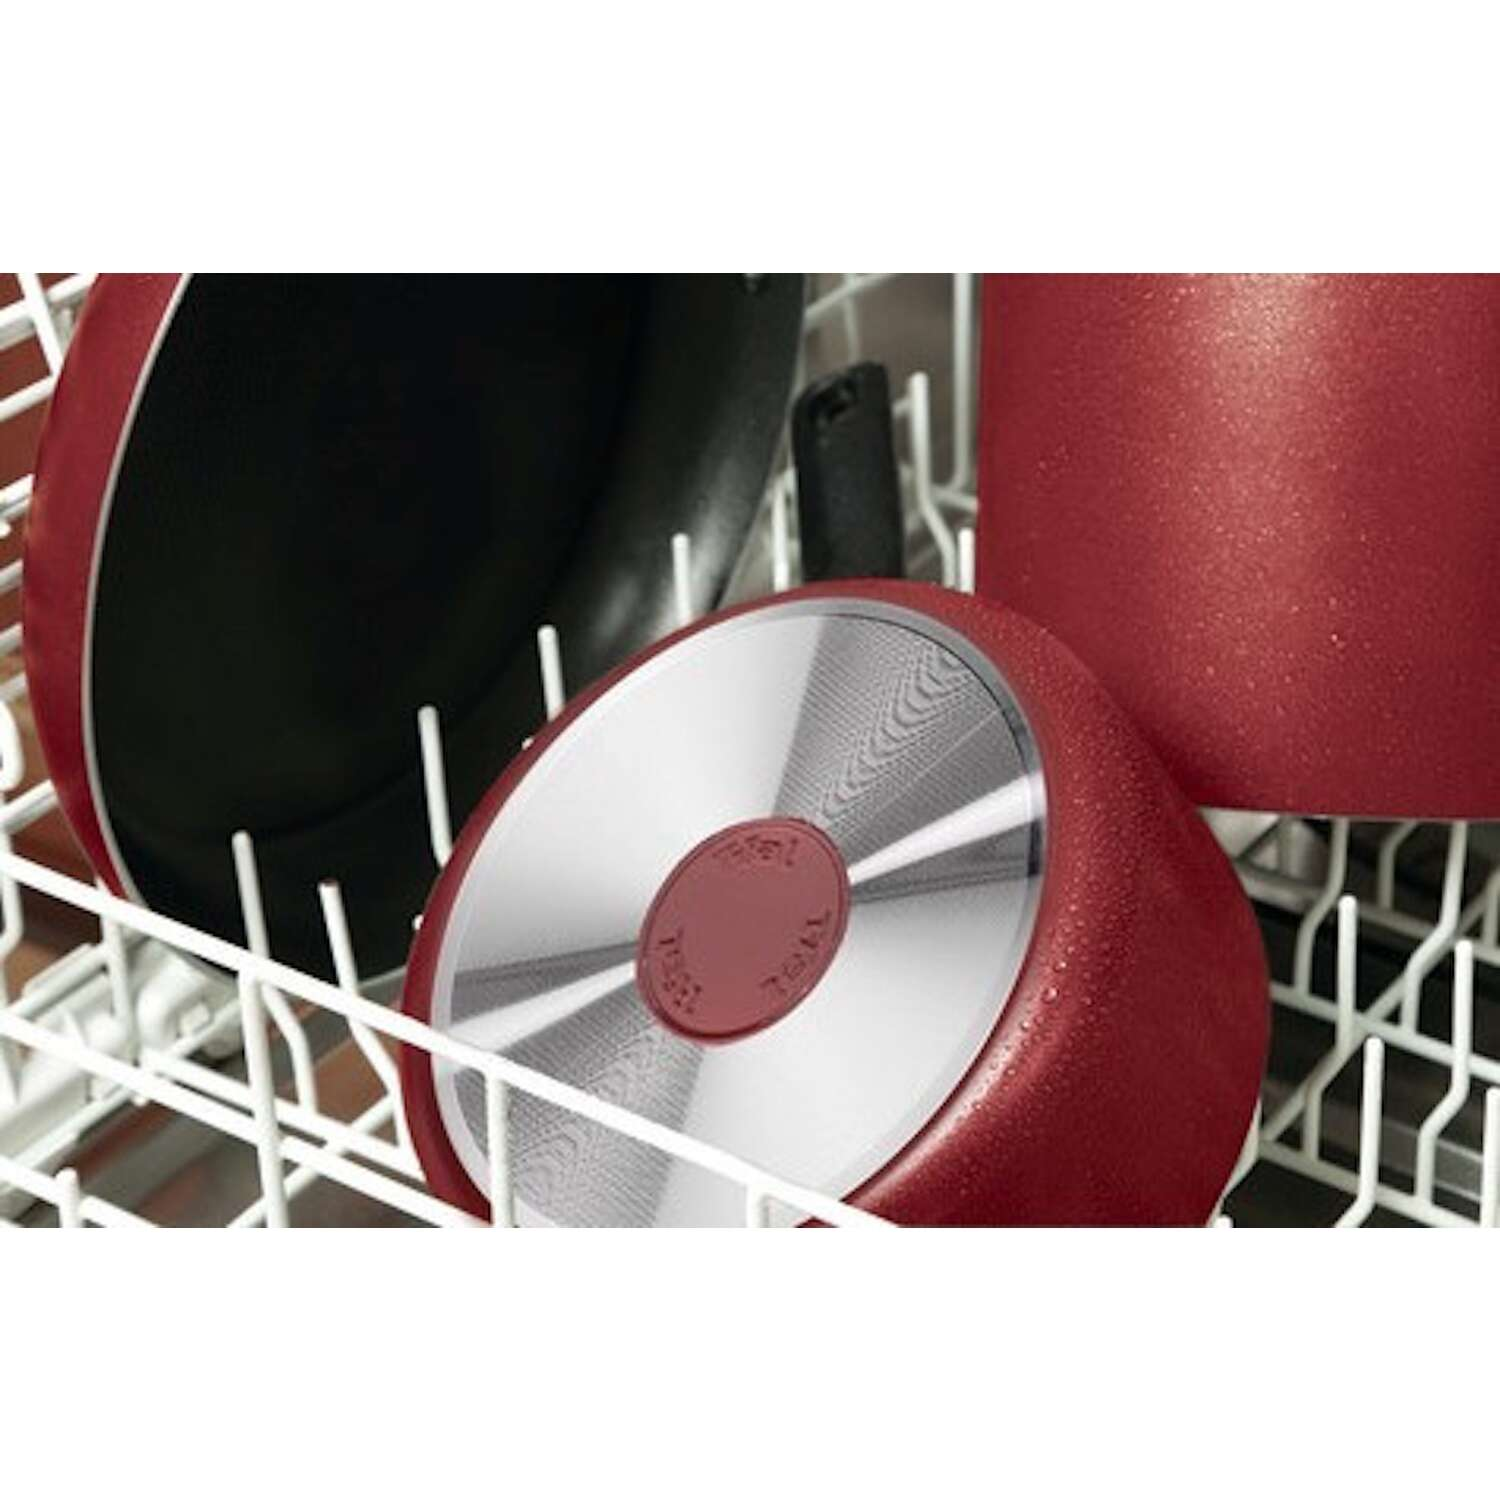 T-Fal  Excite  Aluminum  Fry Pan  11-1/2 in. Red